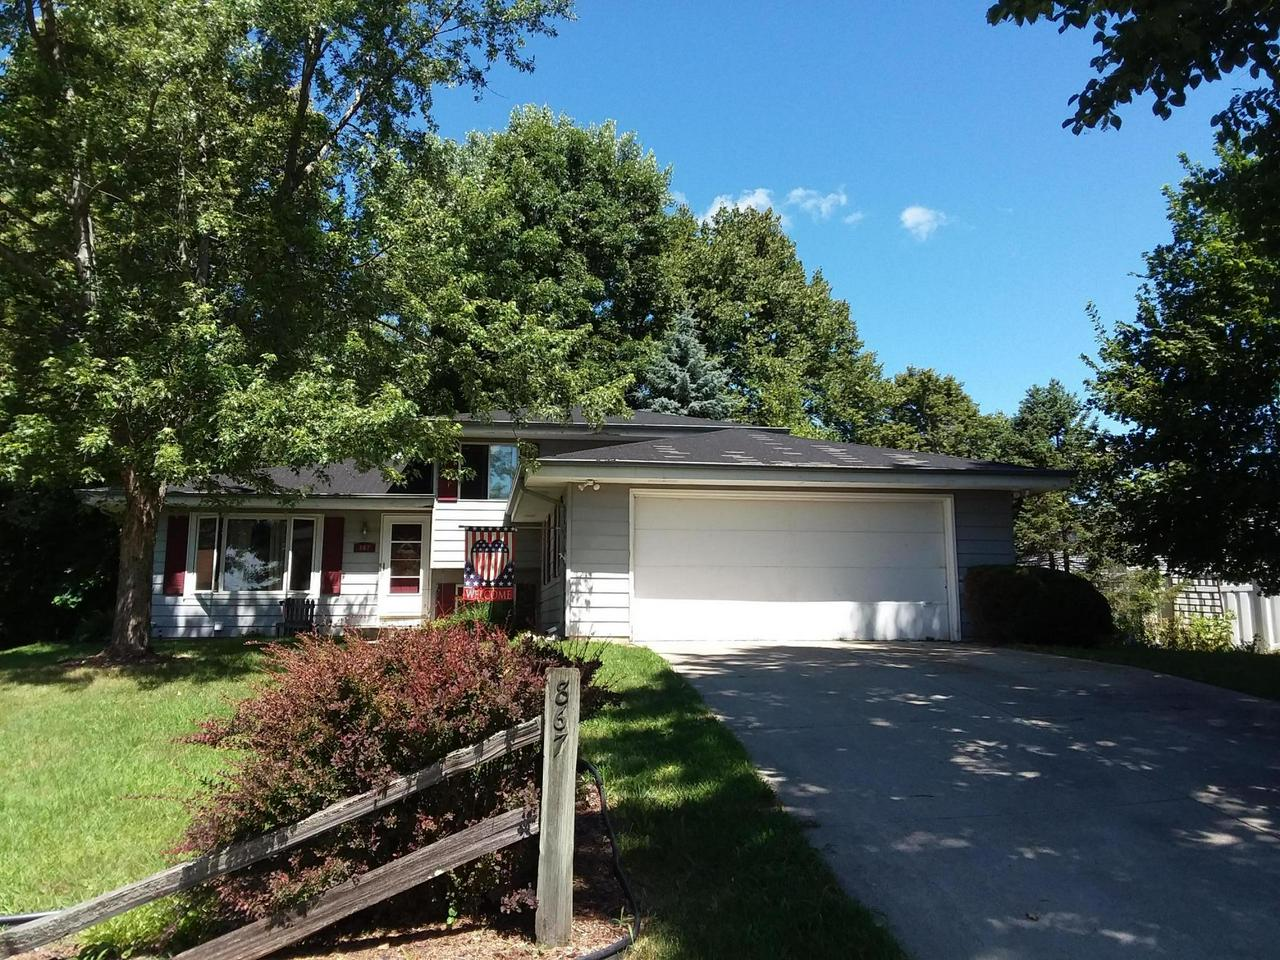 Lovely split level home on quiet cul du sac location yet convenient to all the great things Hartford has to offer.  Three generous BRs with full BA on same level.  Bright LR opens to Eat-in KIT which comes with all appliances and sliding doors leading to deck, gazebo, and private, tree-lined backyard.  LL features finished FR and Half BA.  Basement area includes washer and dryer and has plenty of storage.  Attached 2.0 car garage.  Priced to sell!